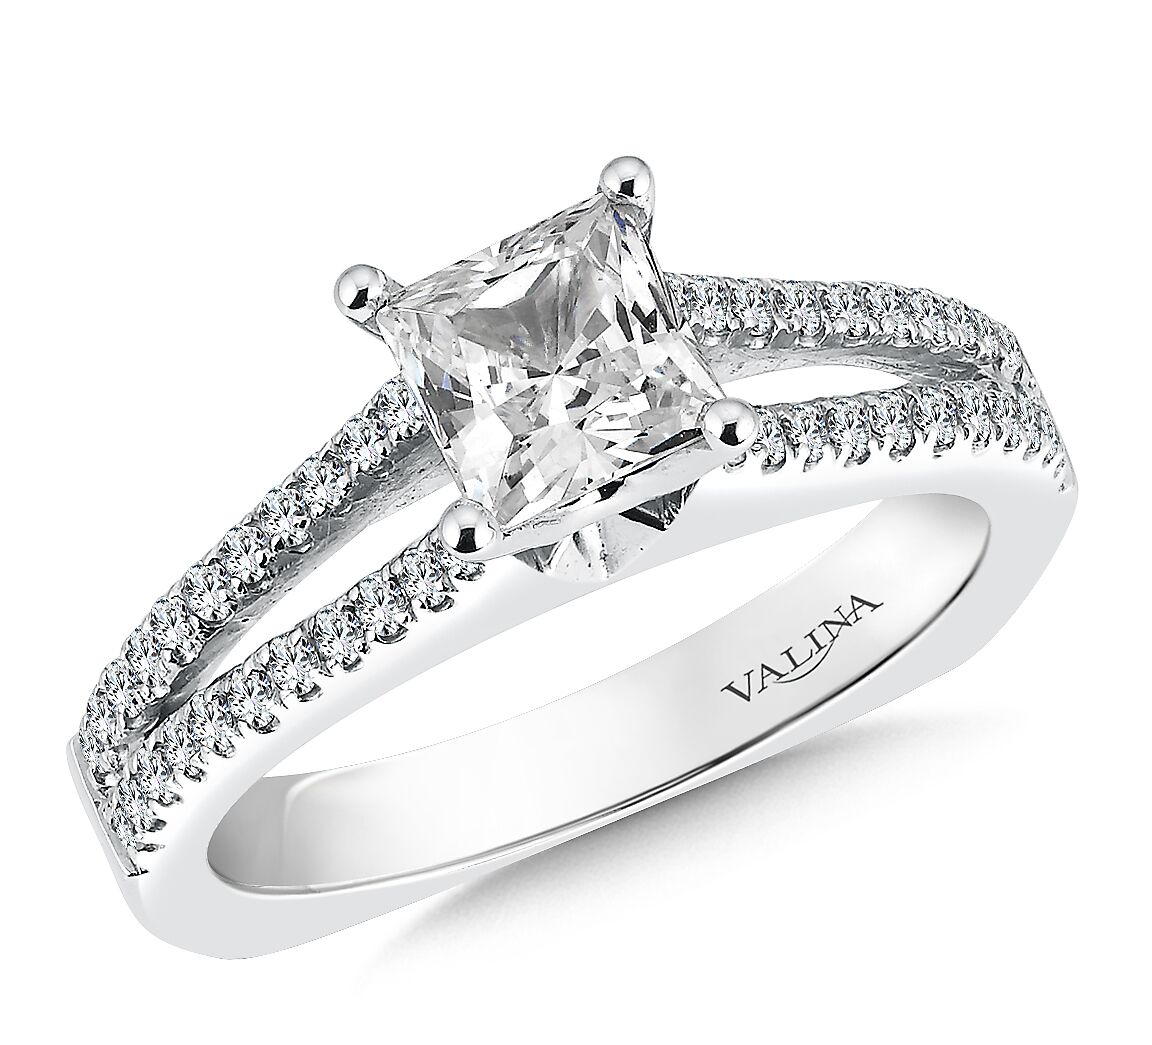 Wedding Band Sets Princess Cut Diamond - Engagement Rings Dallas 1